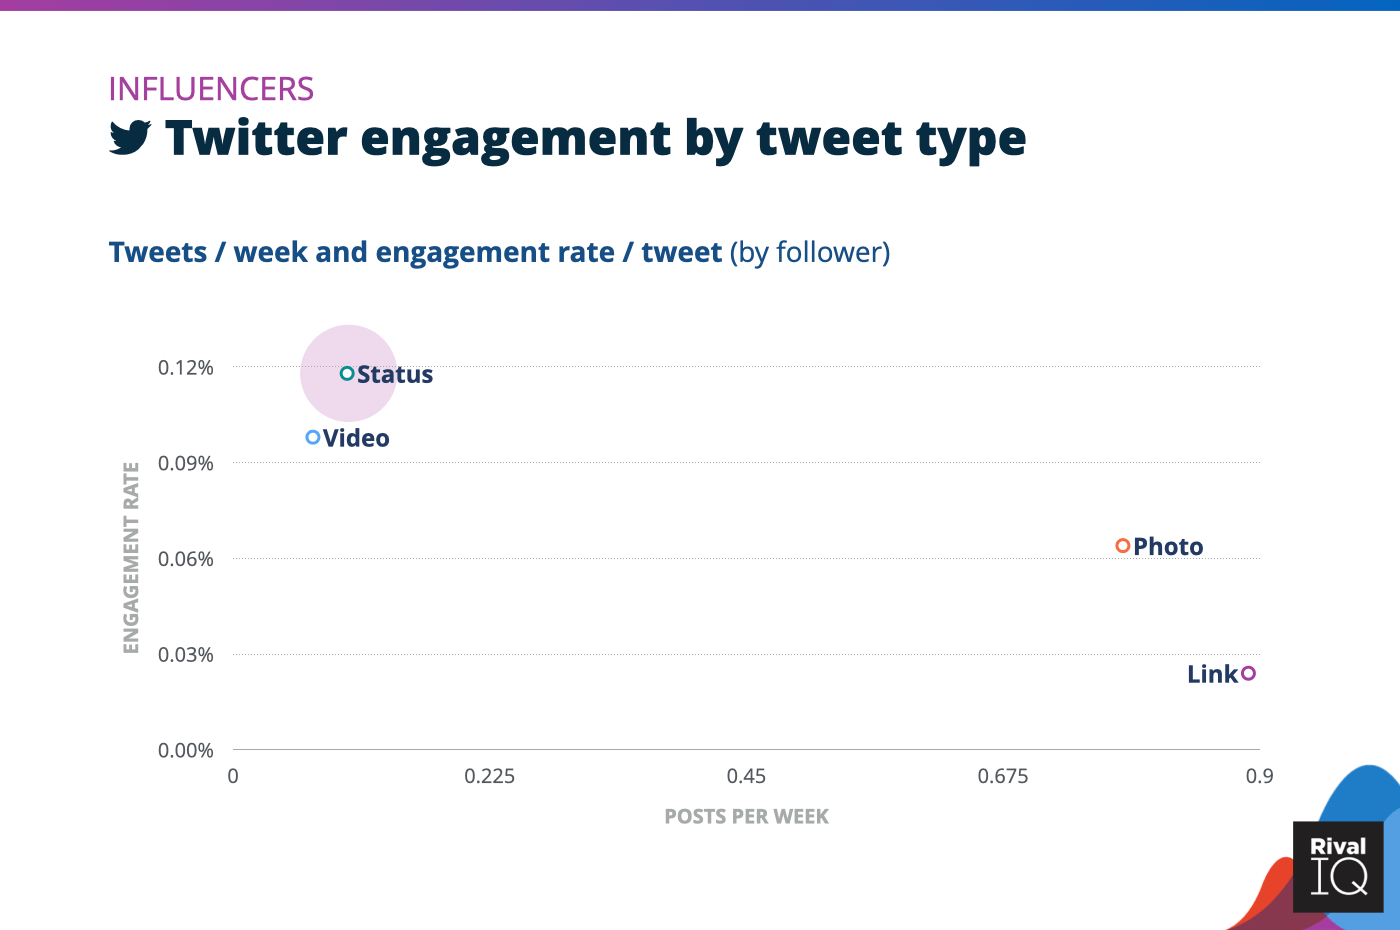 Chart of social media benchmarks for Twitter posts per week and engagement rate by tweet type, Influencers